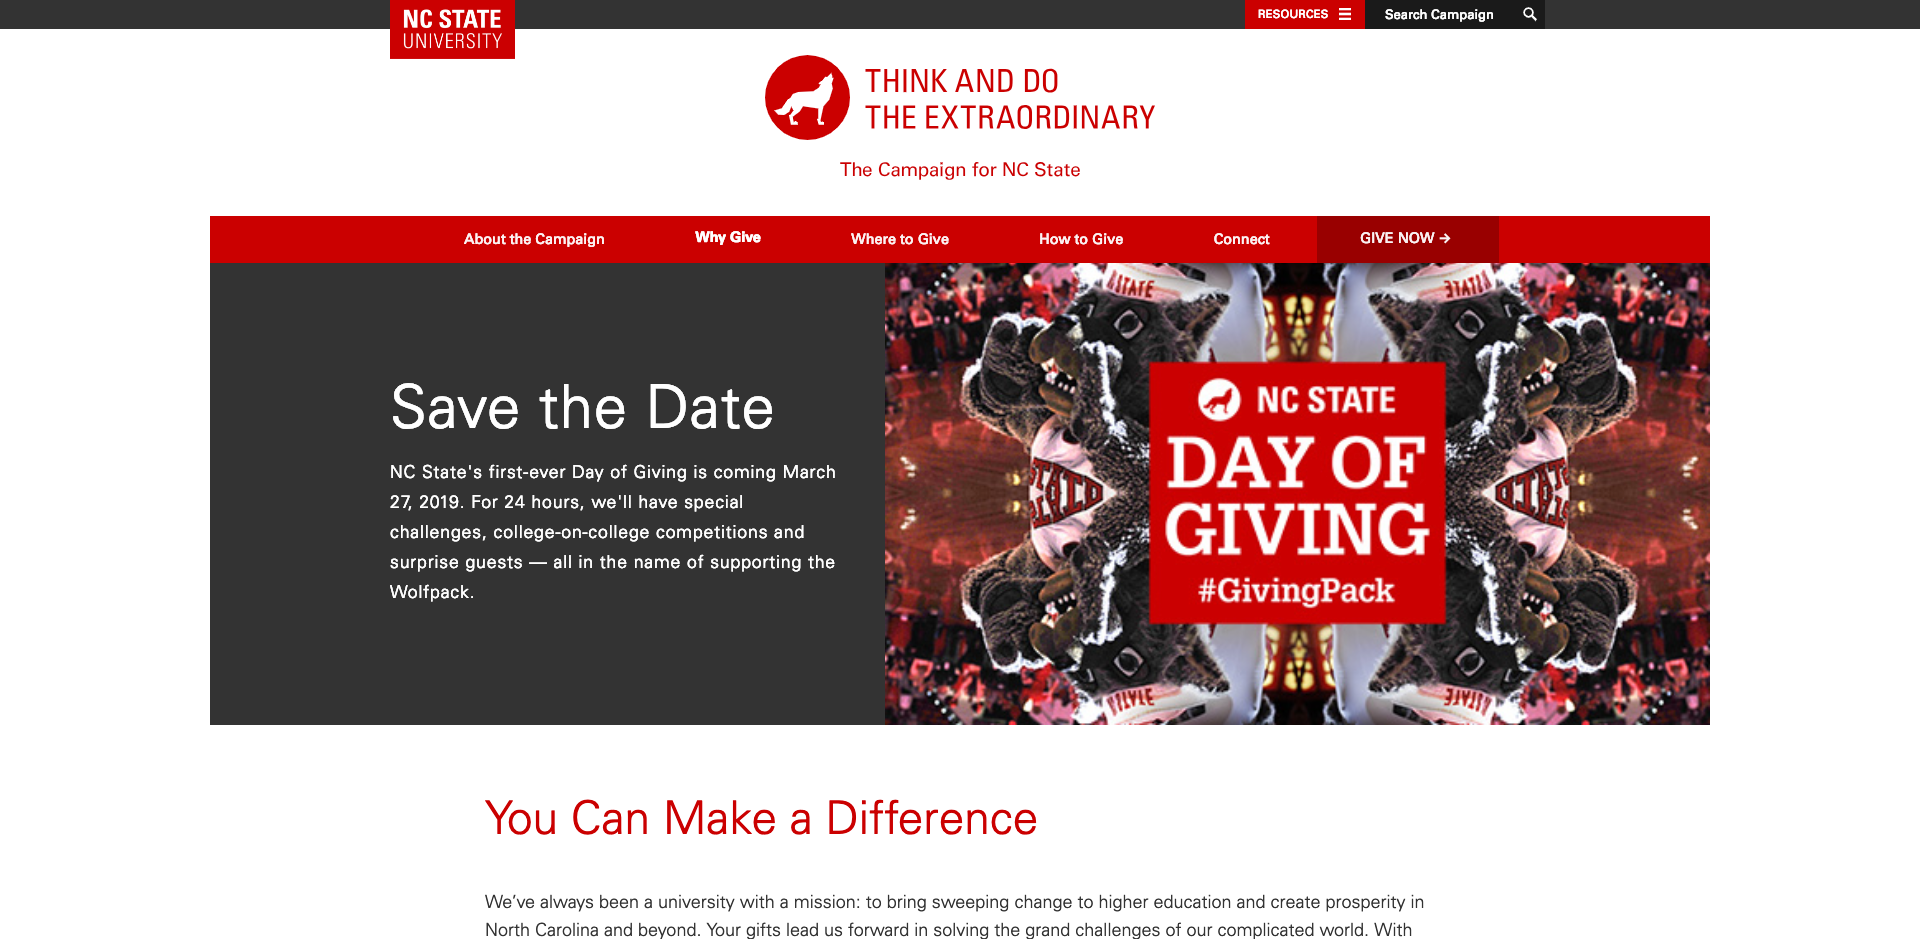 Example of the Day of Giving image used in the header section of a webpage